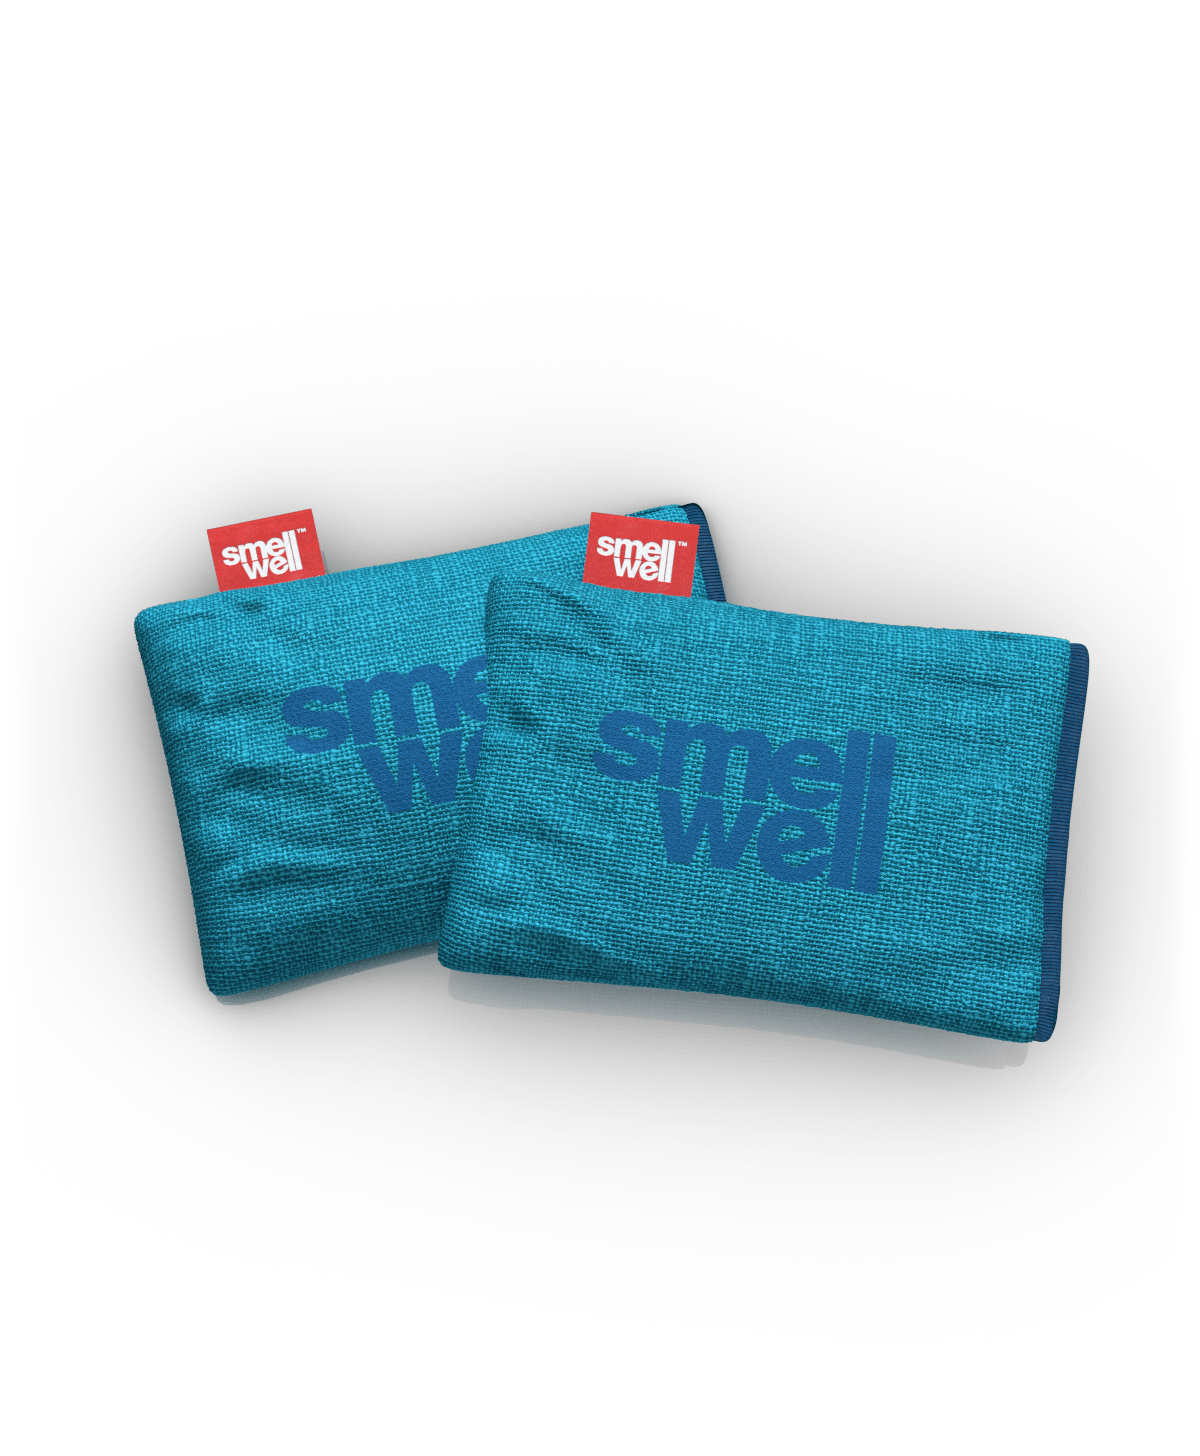 A package of SmellWell Sensitive - Blue